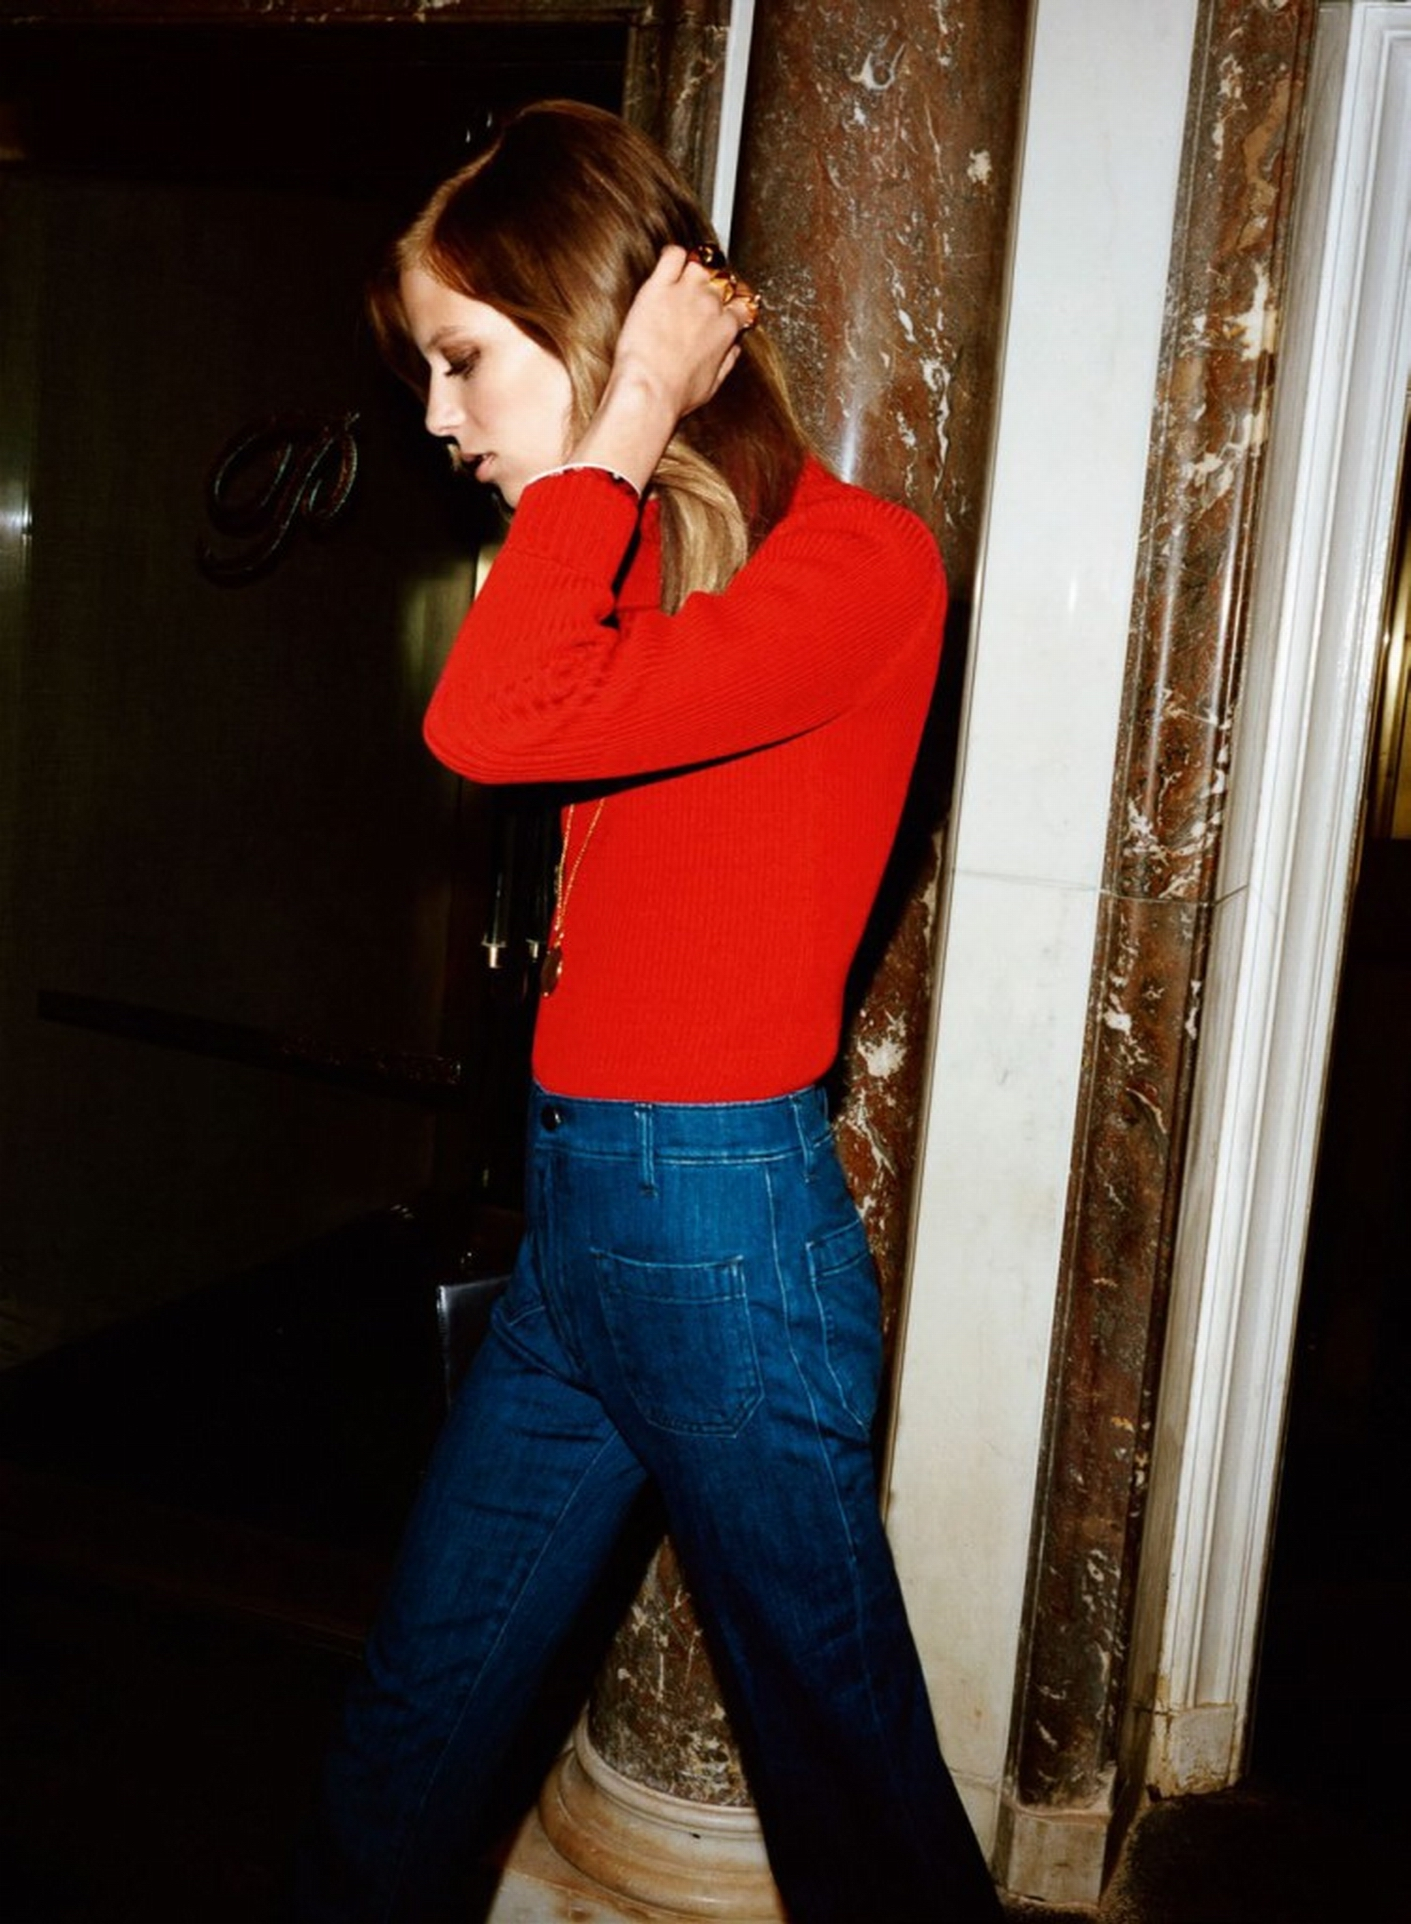 vogue-paris-march-2016-lexi-boling-by-angelo-pennetta-5-751x1024